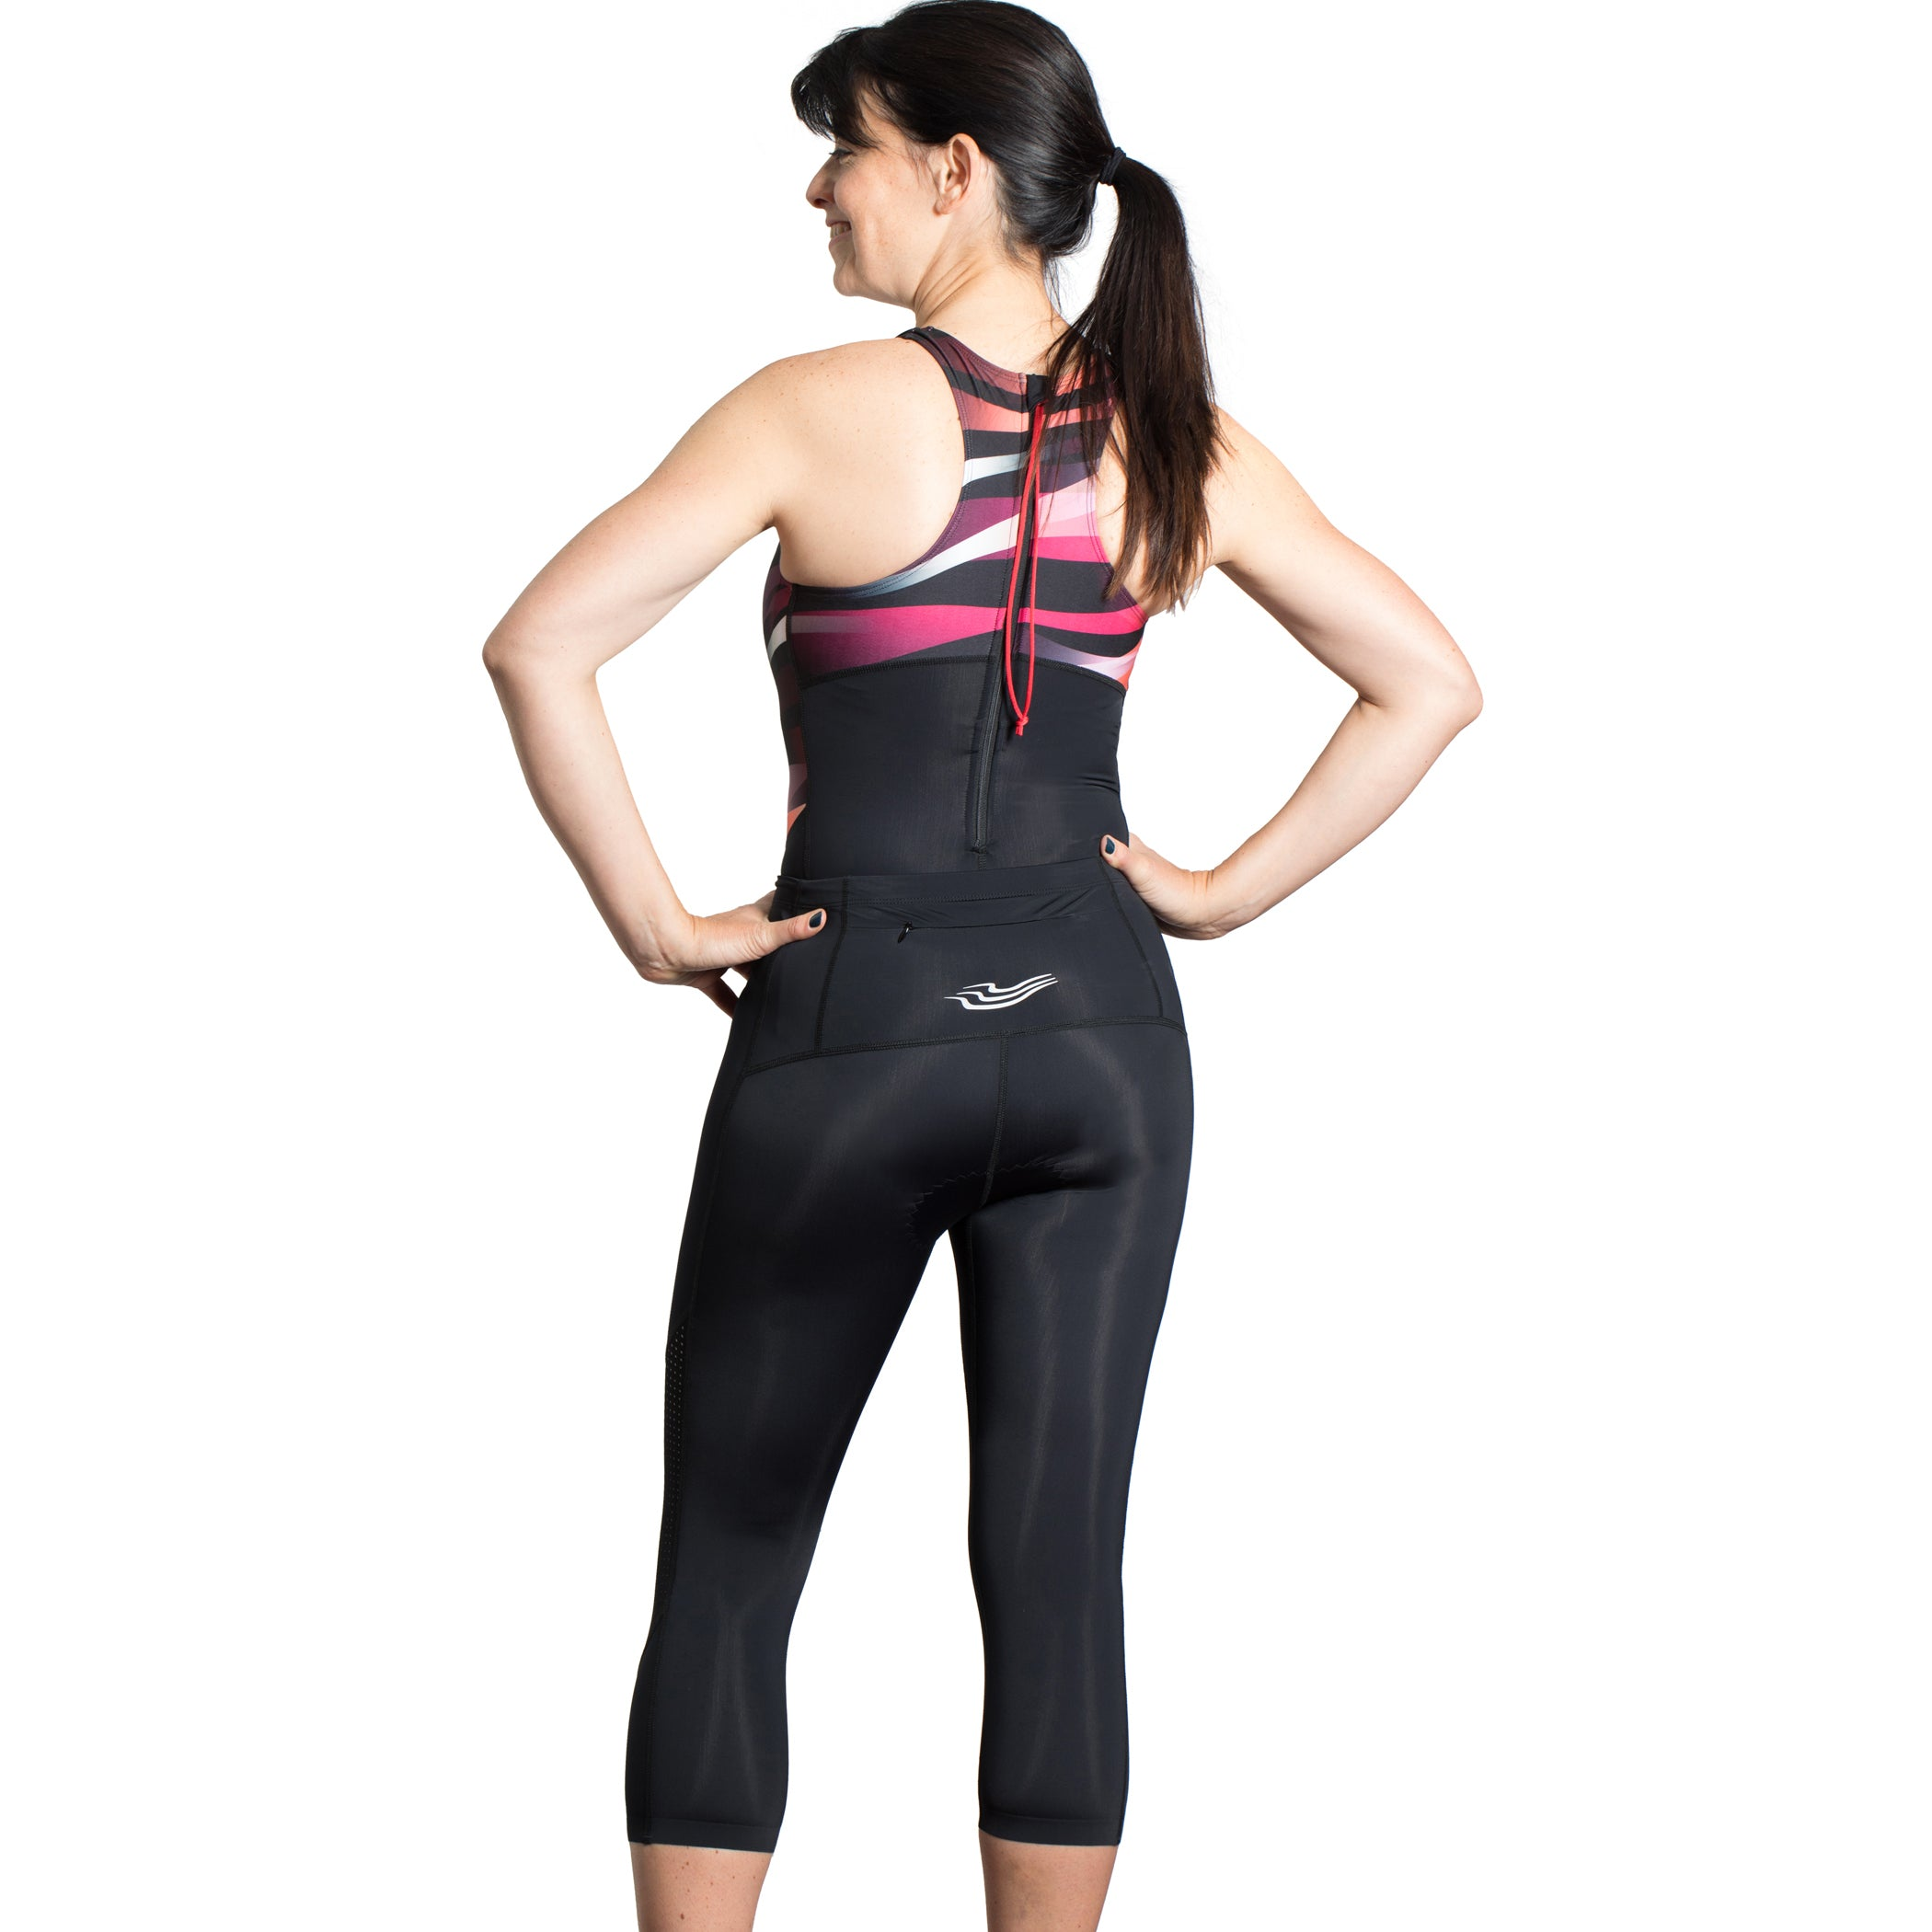 Wave & Pace Swimsuit and Triathlon Capri Set - S, M